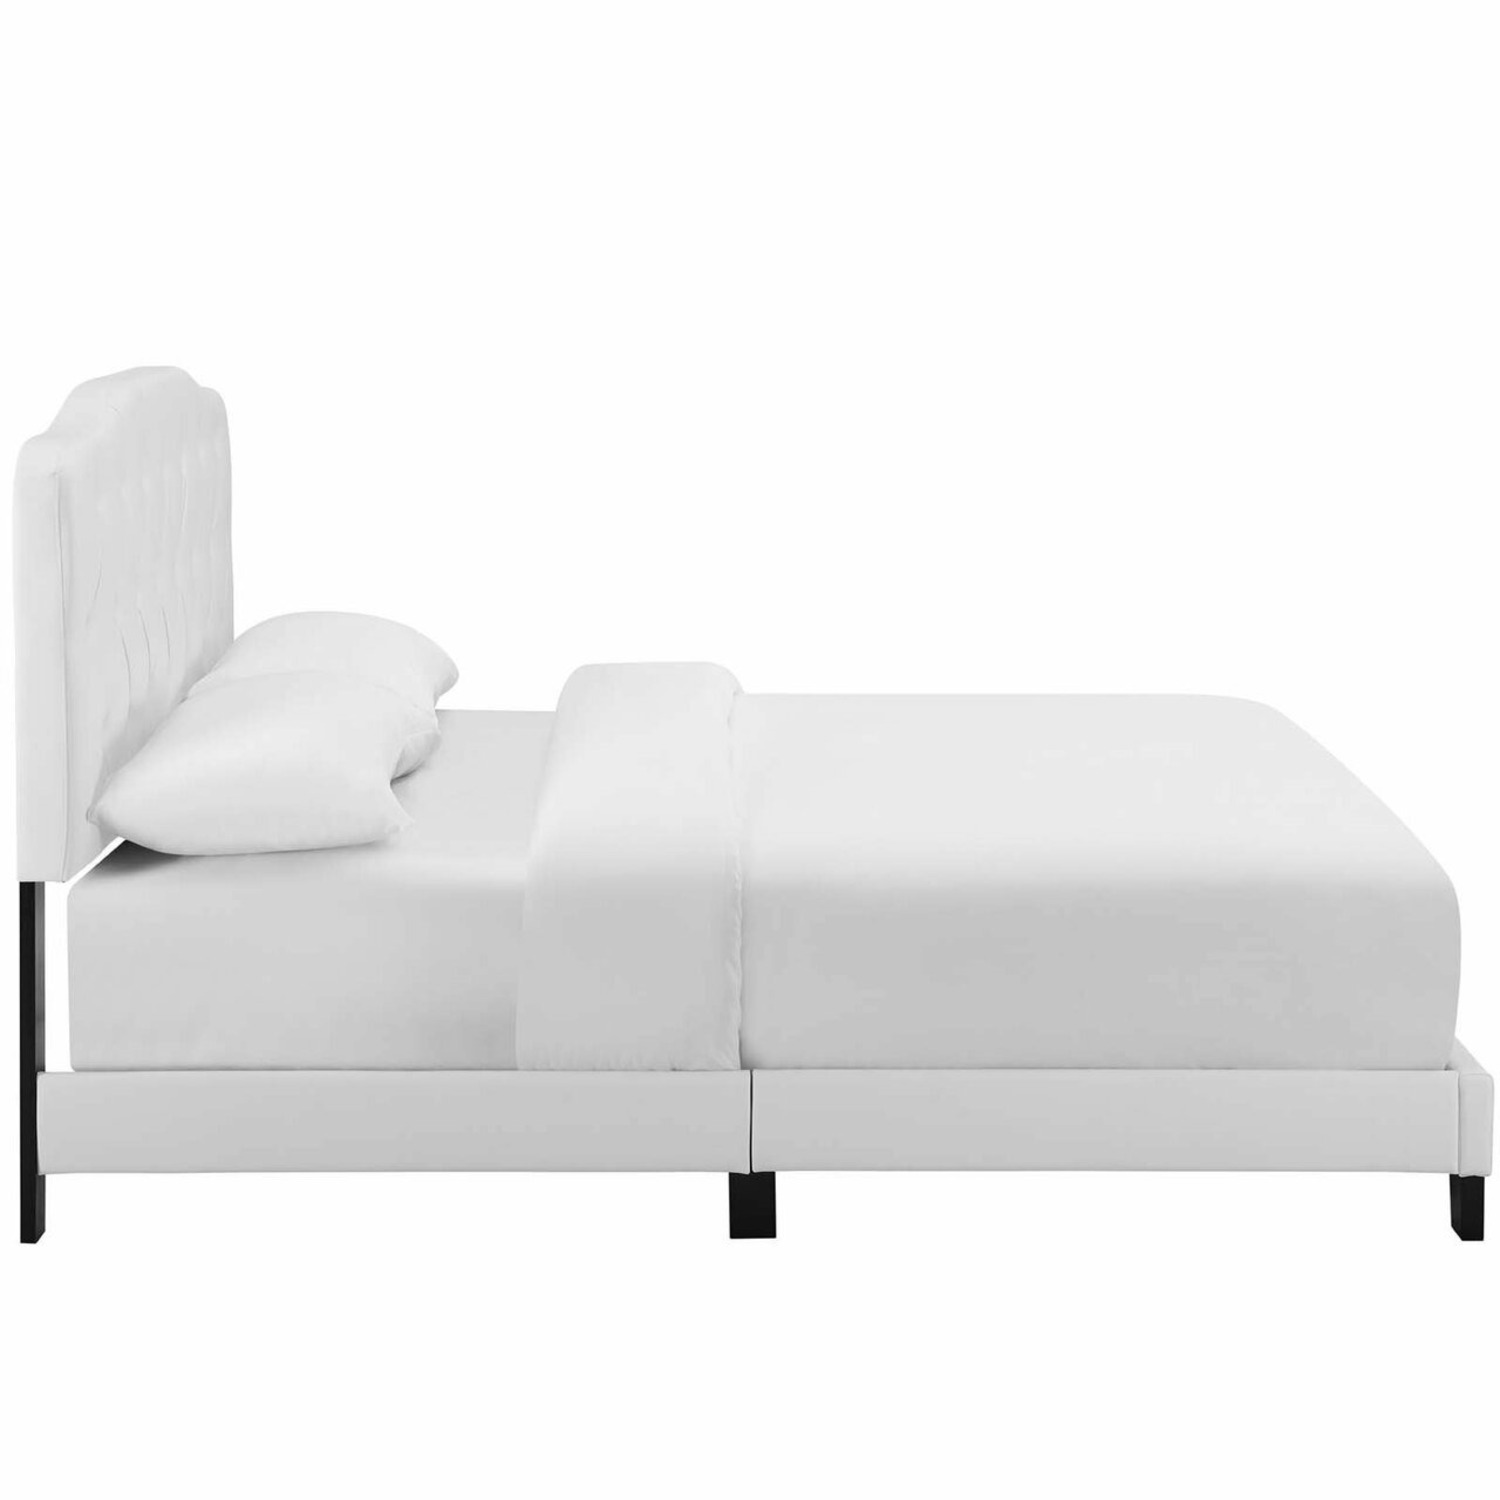 Full Bed In White Button-Tufted Faux Leather - image-2